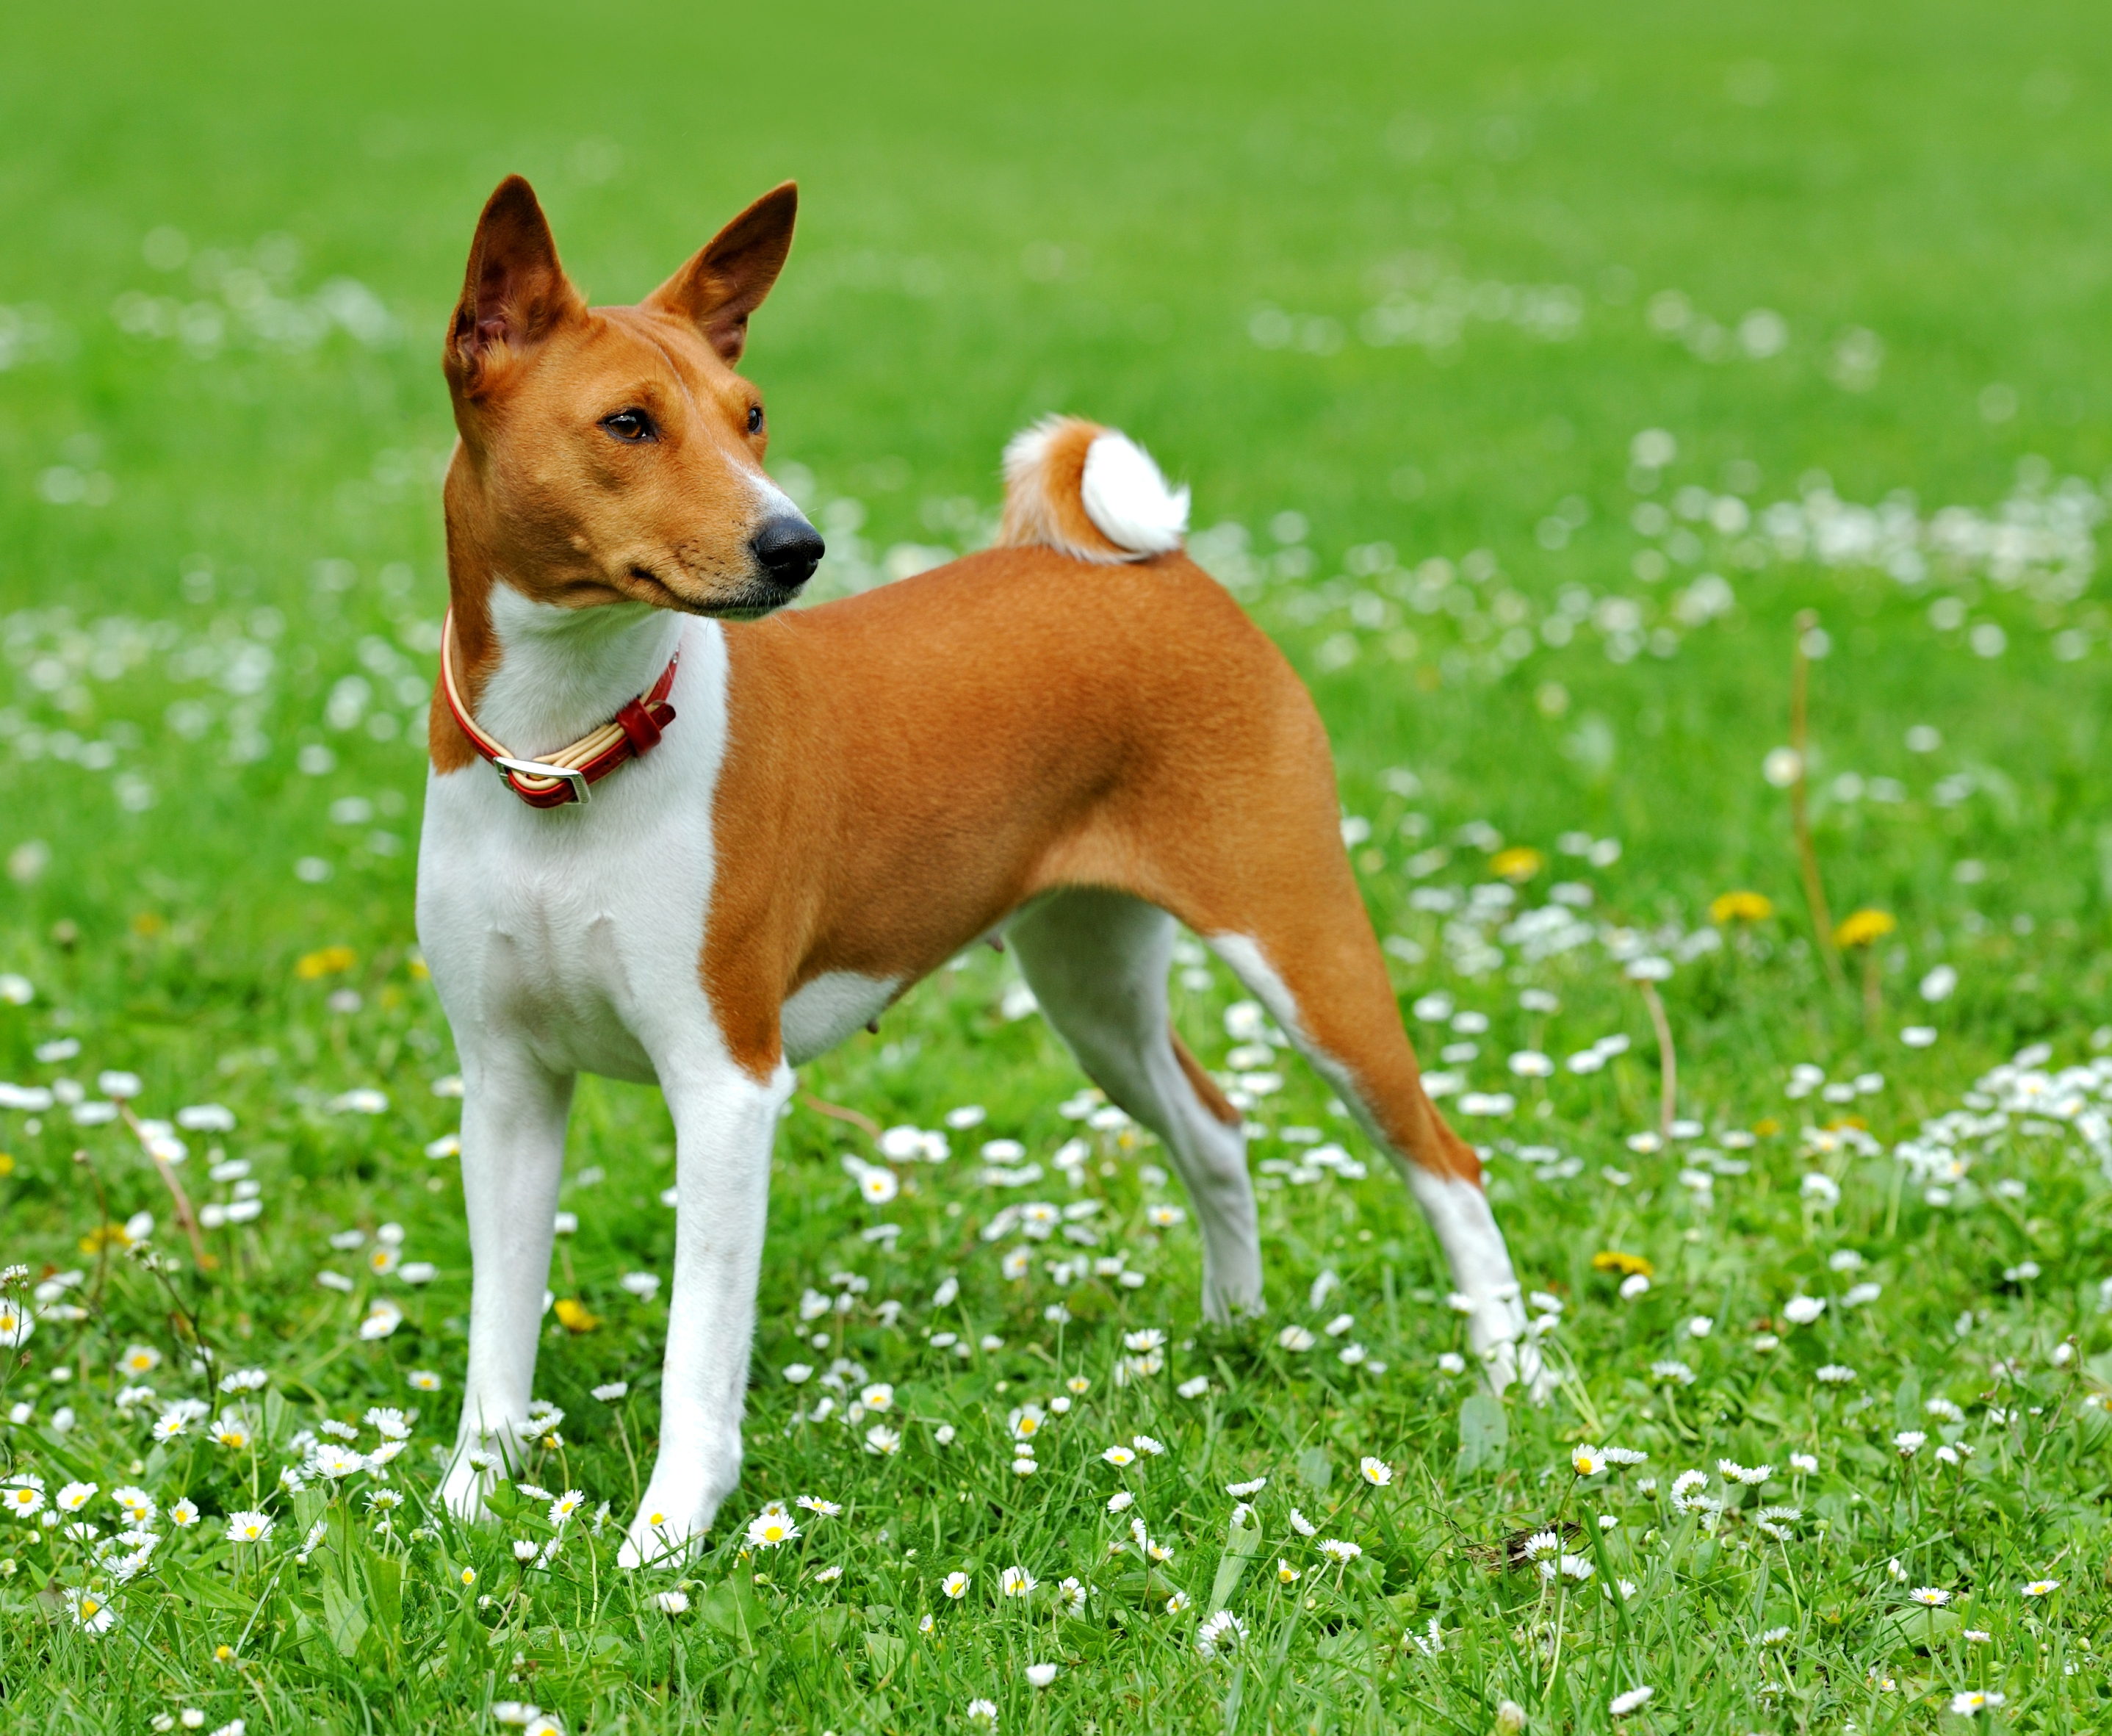 Best Food For Puppy Basenji